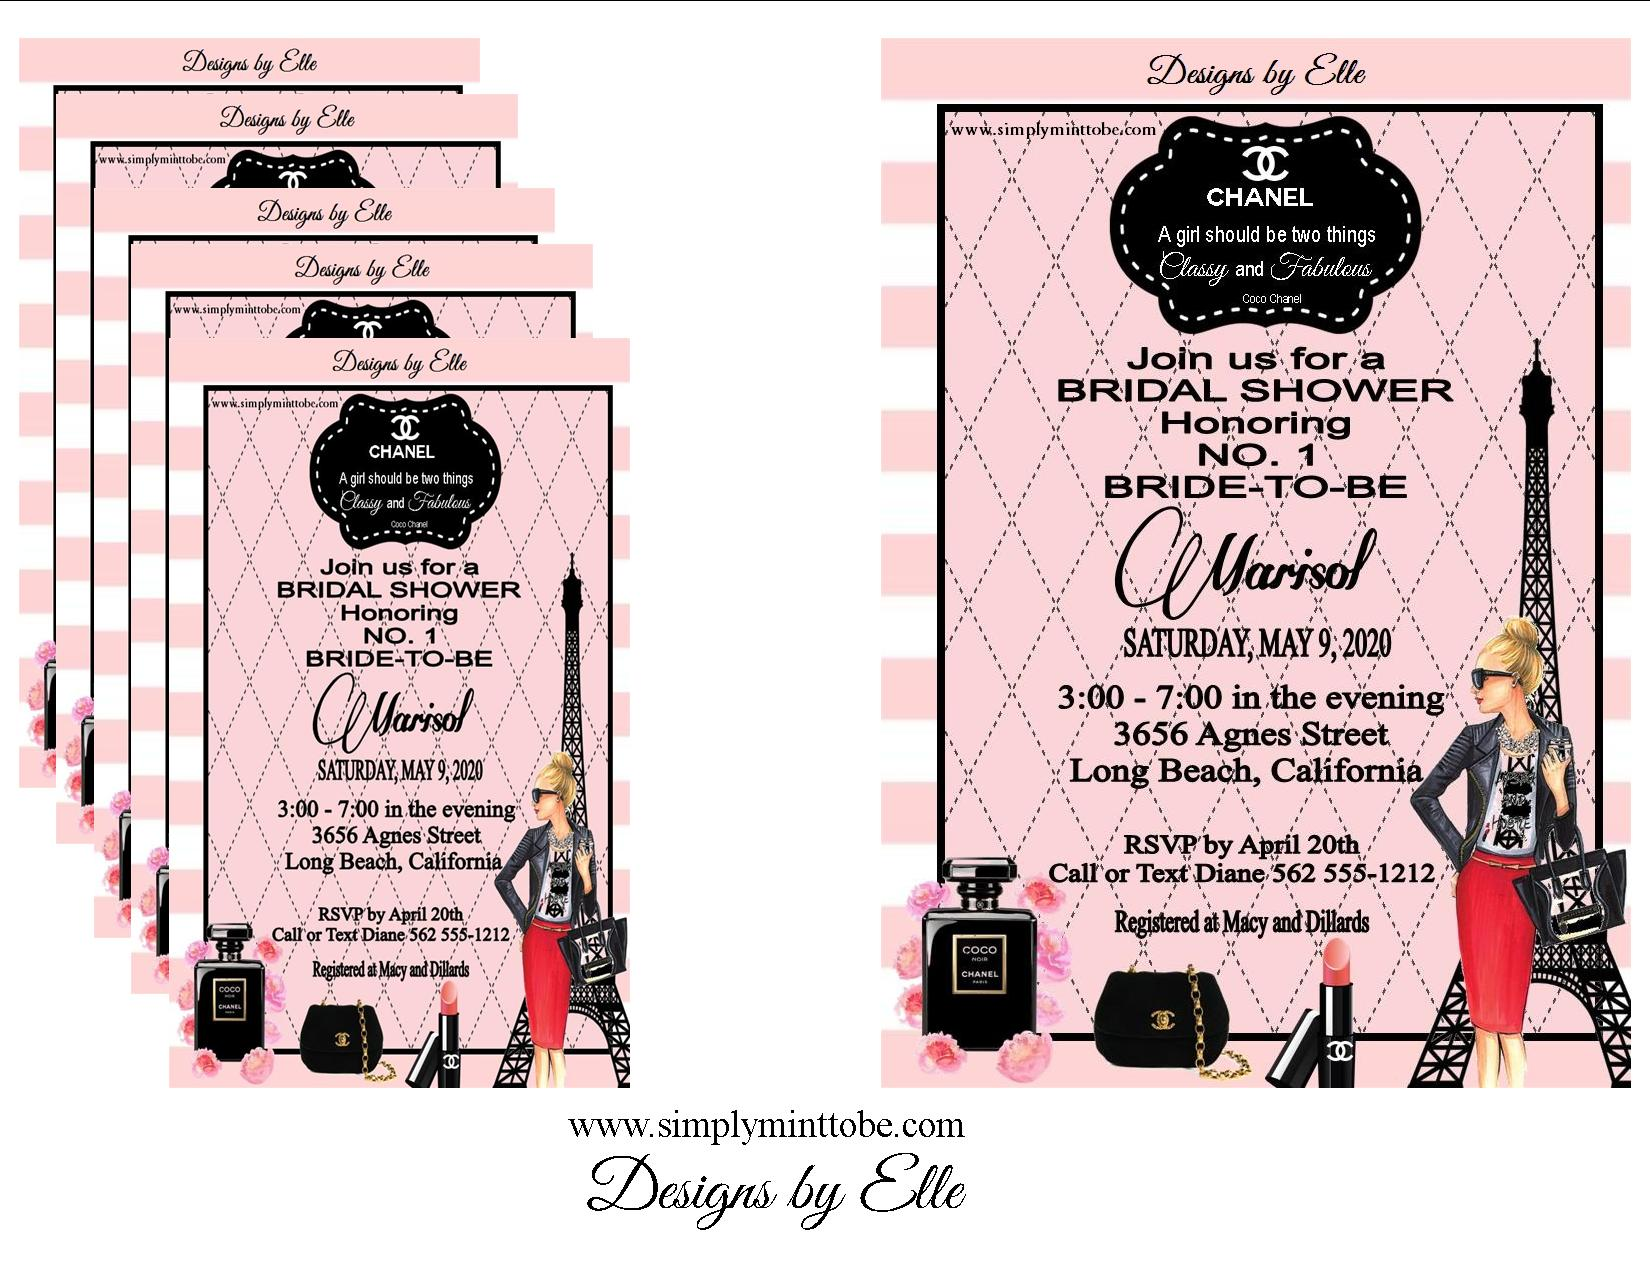 Coco chanel inspired pink and black bridal shower birthday baby coco chanel inspired pink and black bridal shower birthday baby shower invitations personalized to your specifications for all occasions weddings filmwisefo